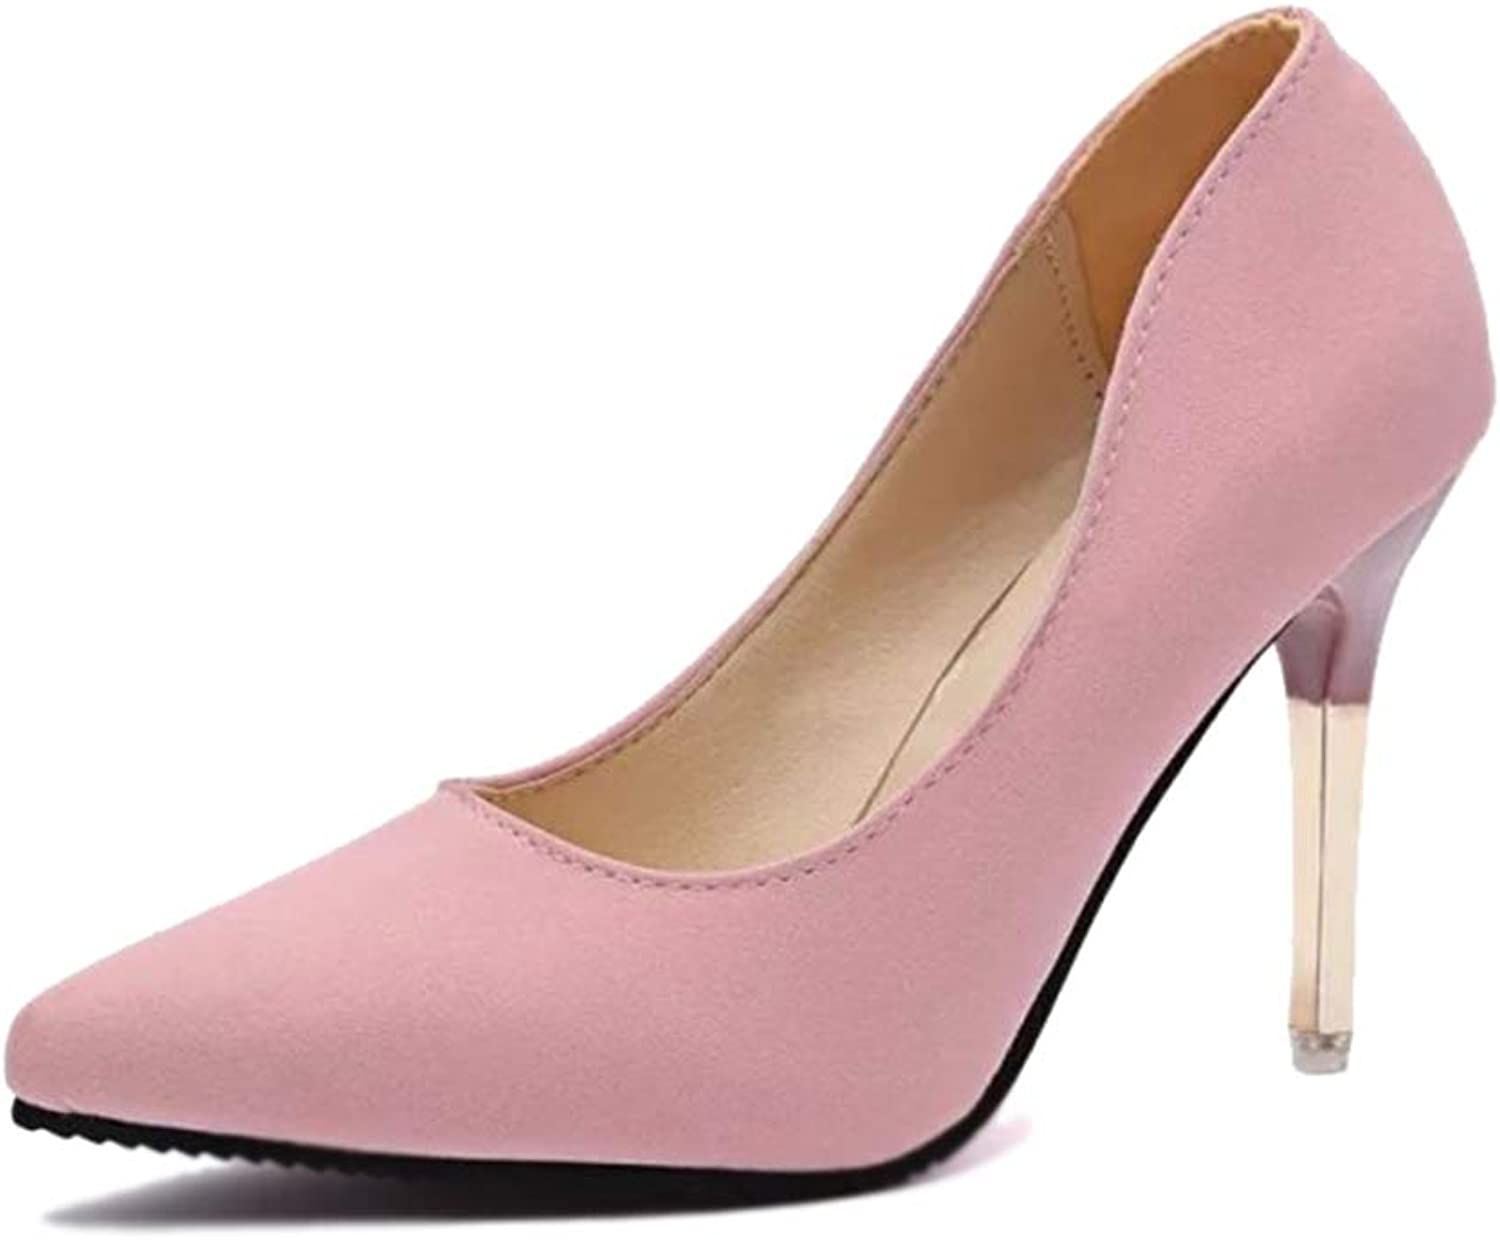 Women's Pumps,Simple Solid color Pointed Toe Breathable Work High Heels